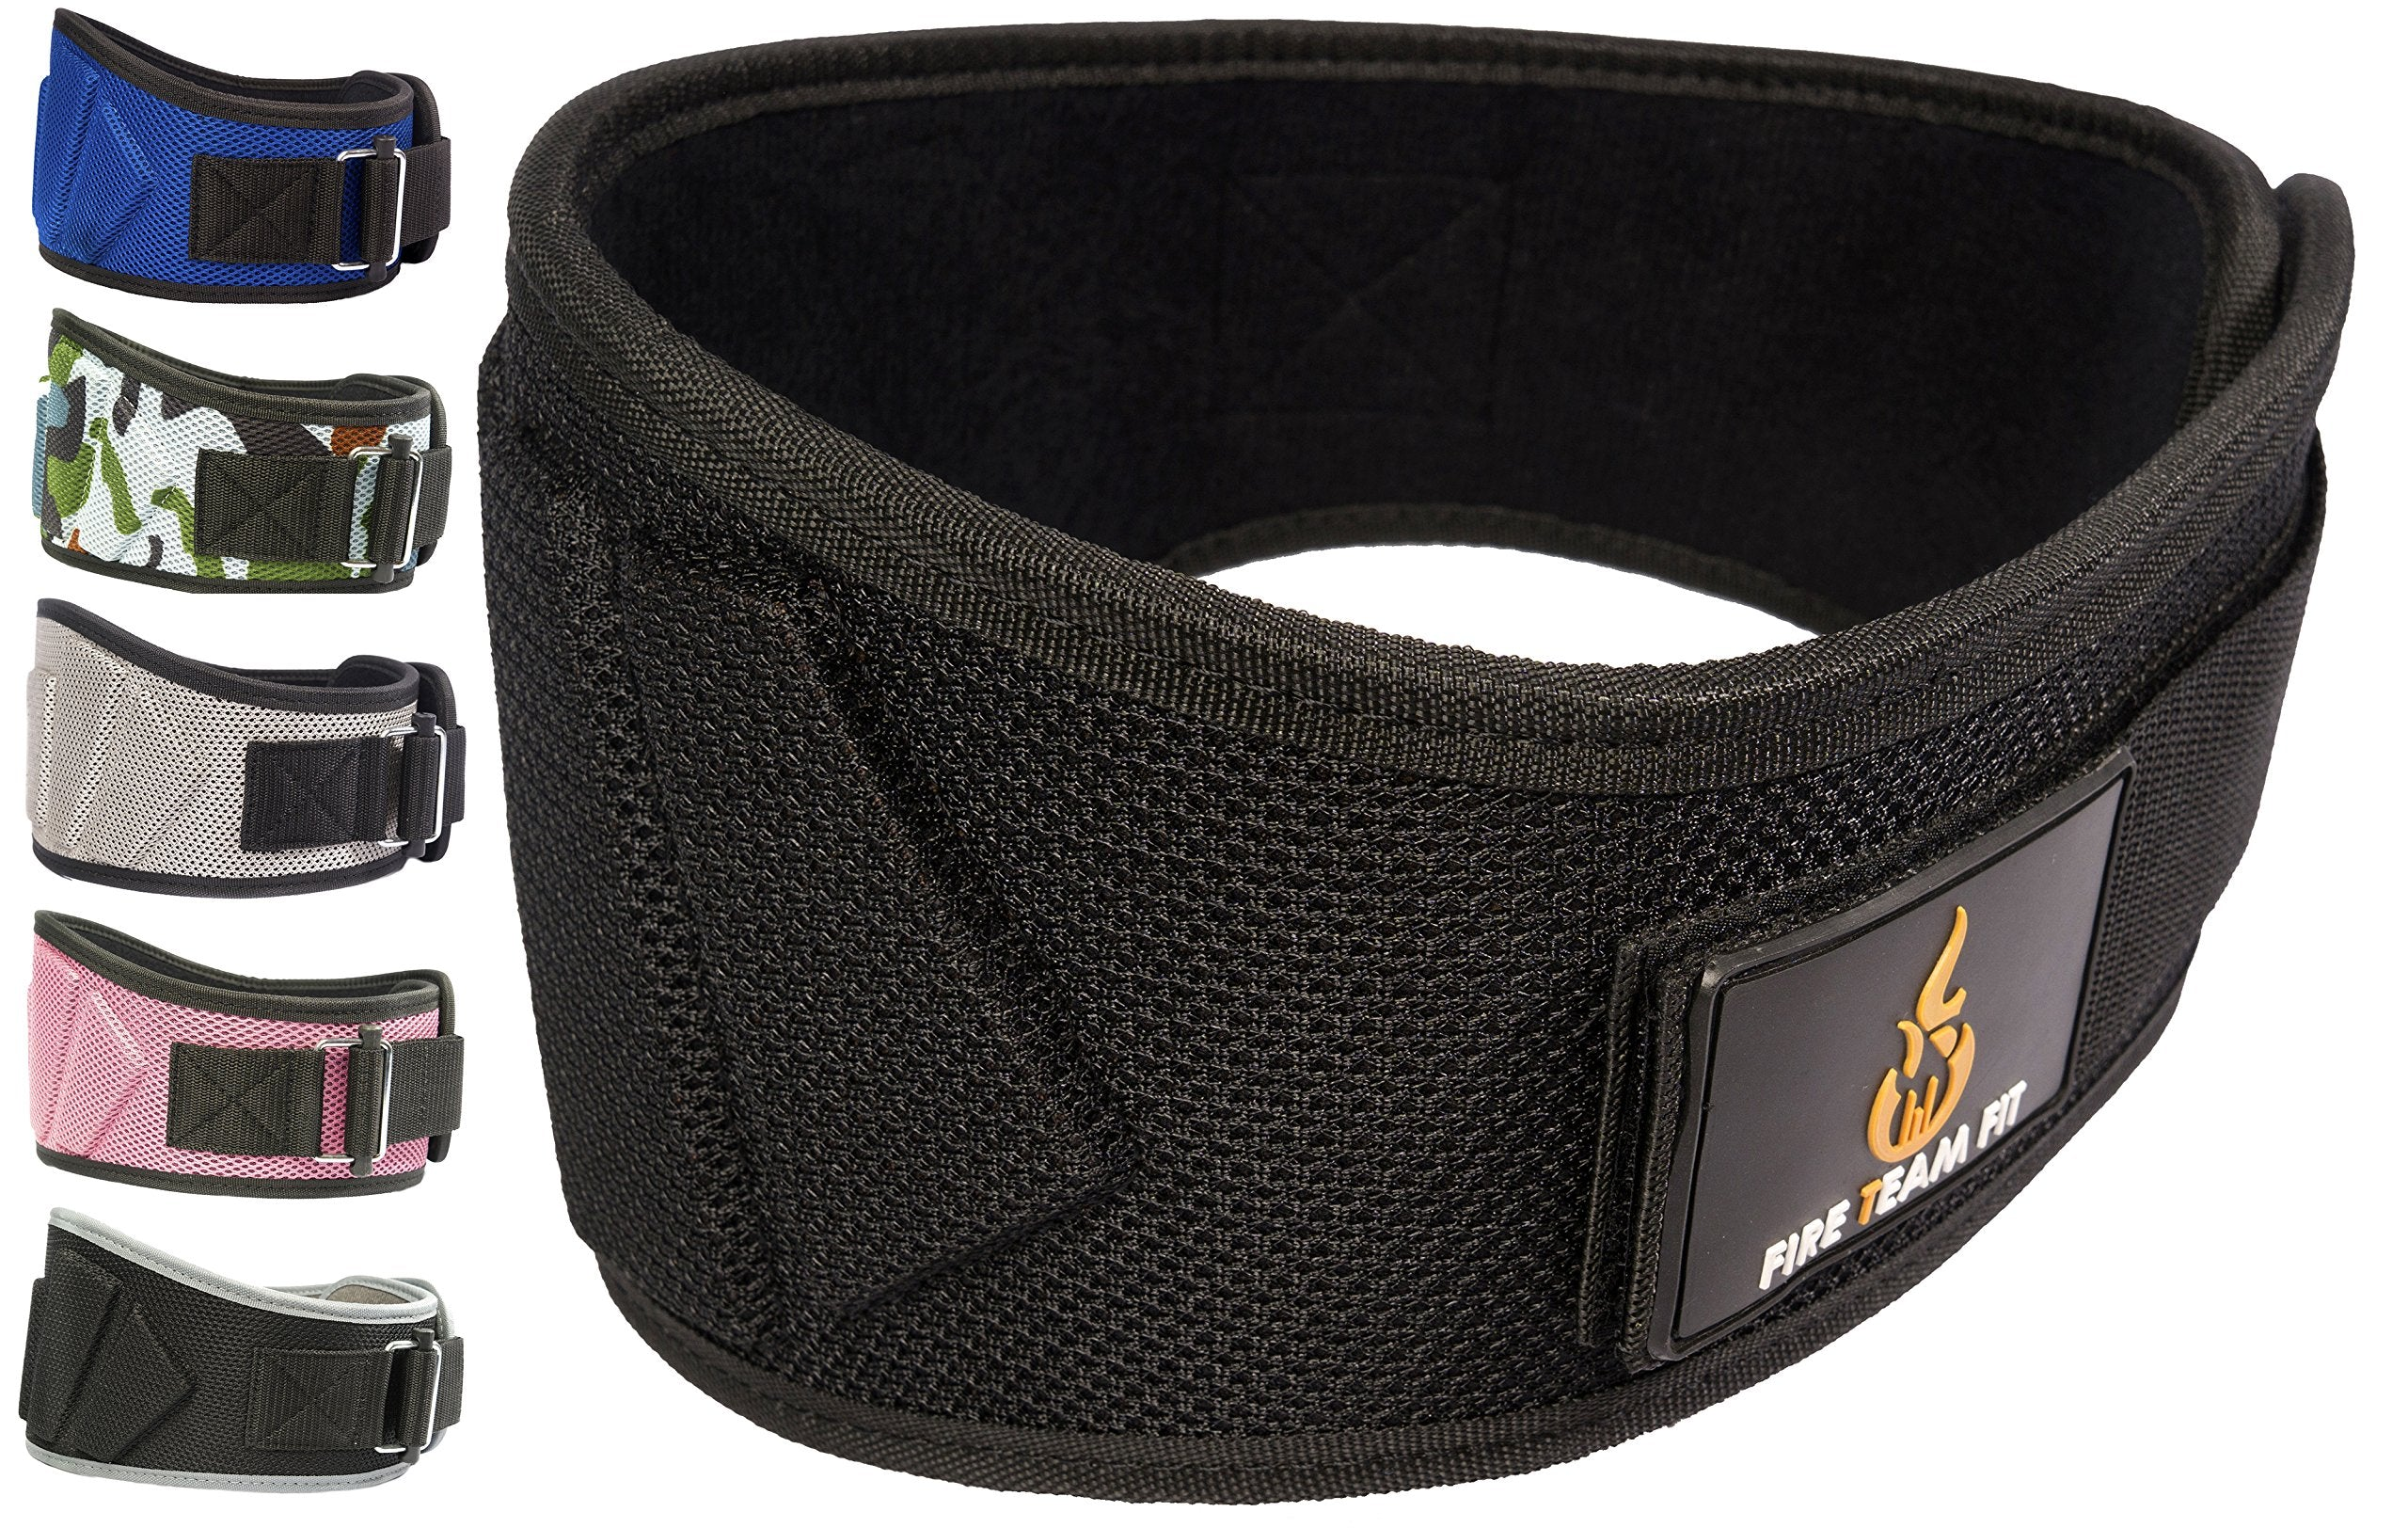 "Fire Team Fit Lifting Belt, Gym Belt, Weight Lifting Belts, Weight Belts for Lifting (Black, 32"" - 38"" Around Navel, Medium)"